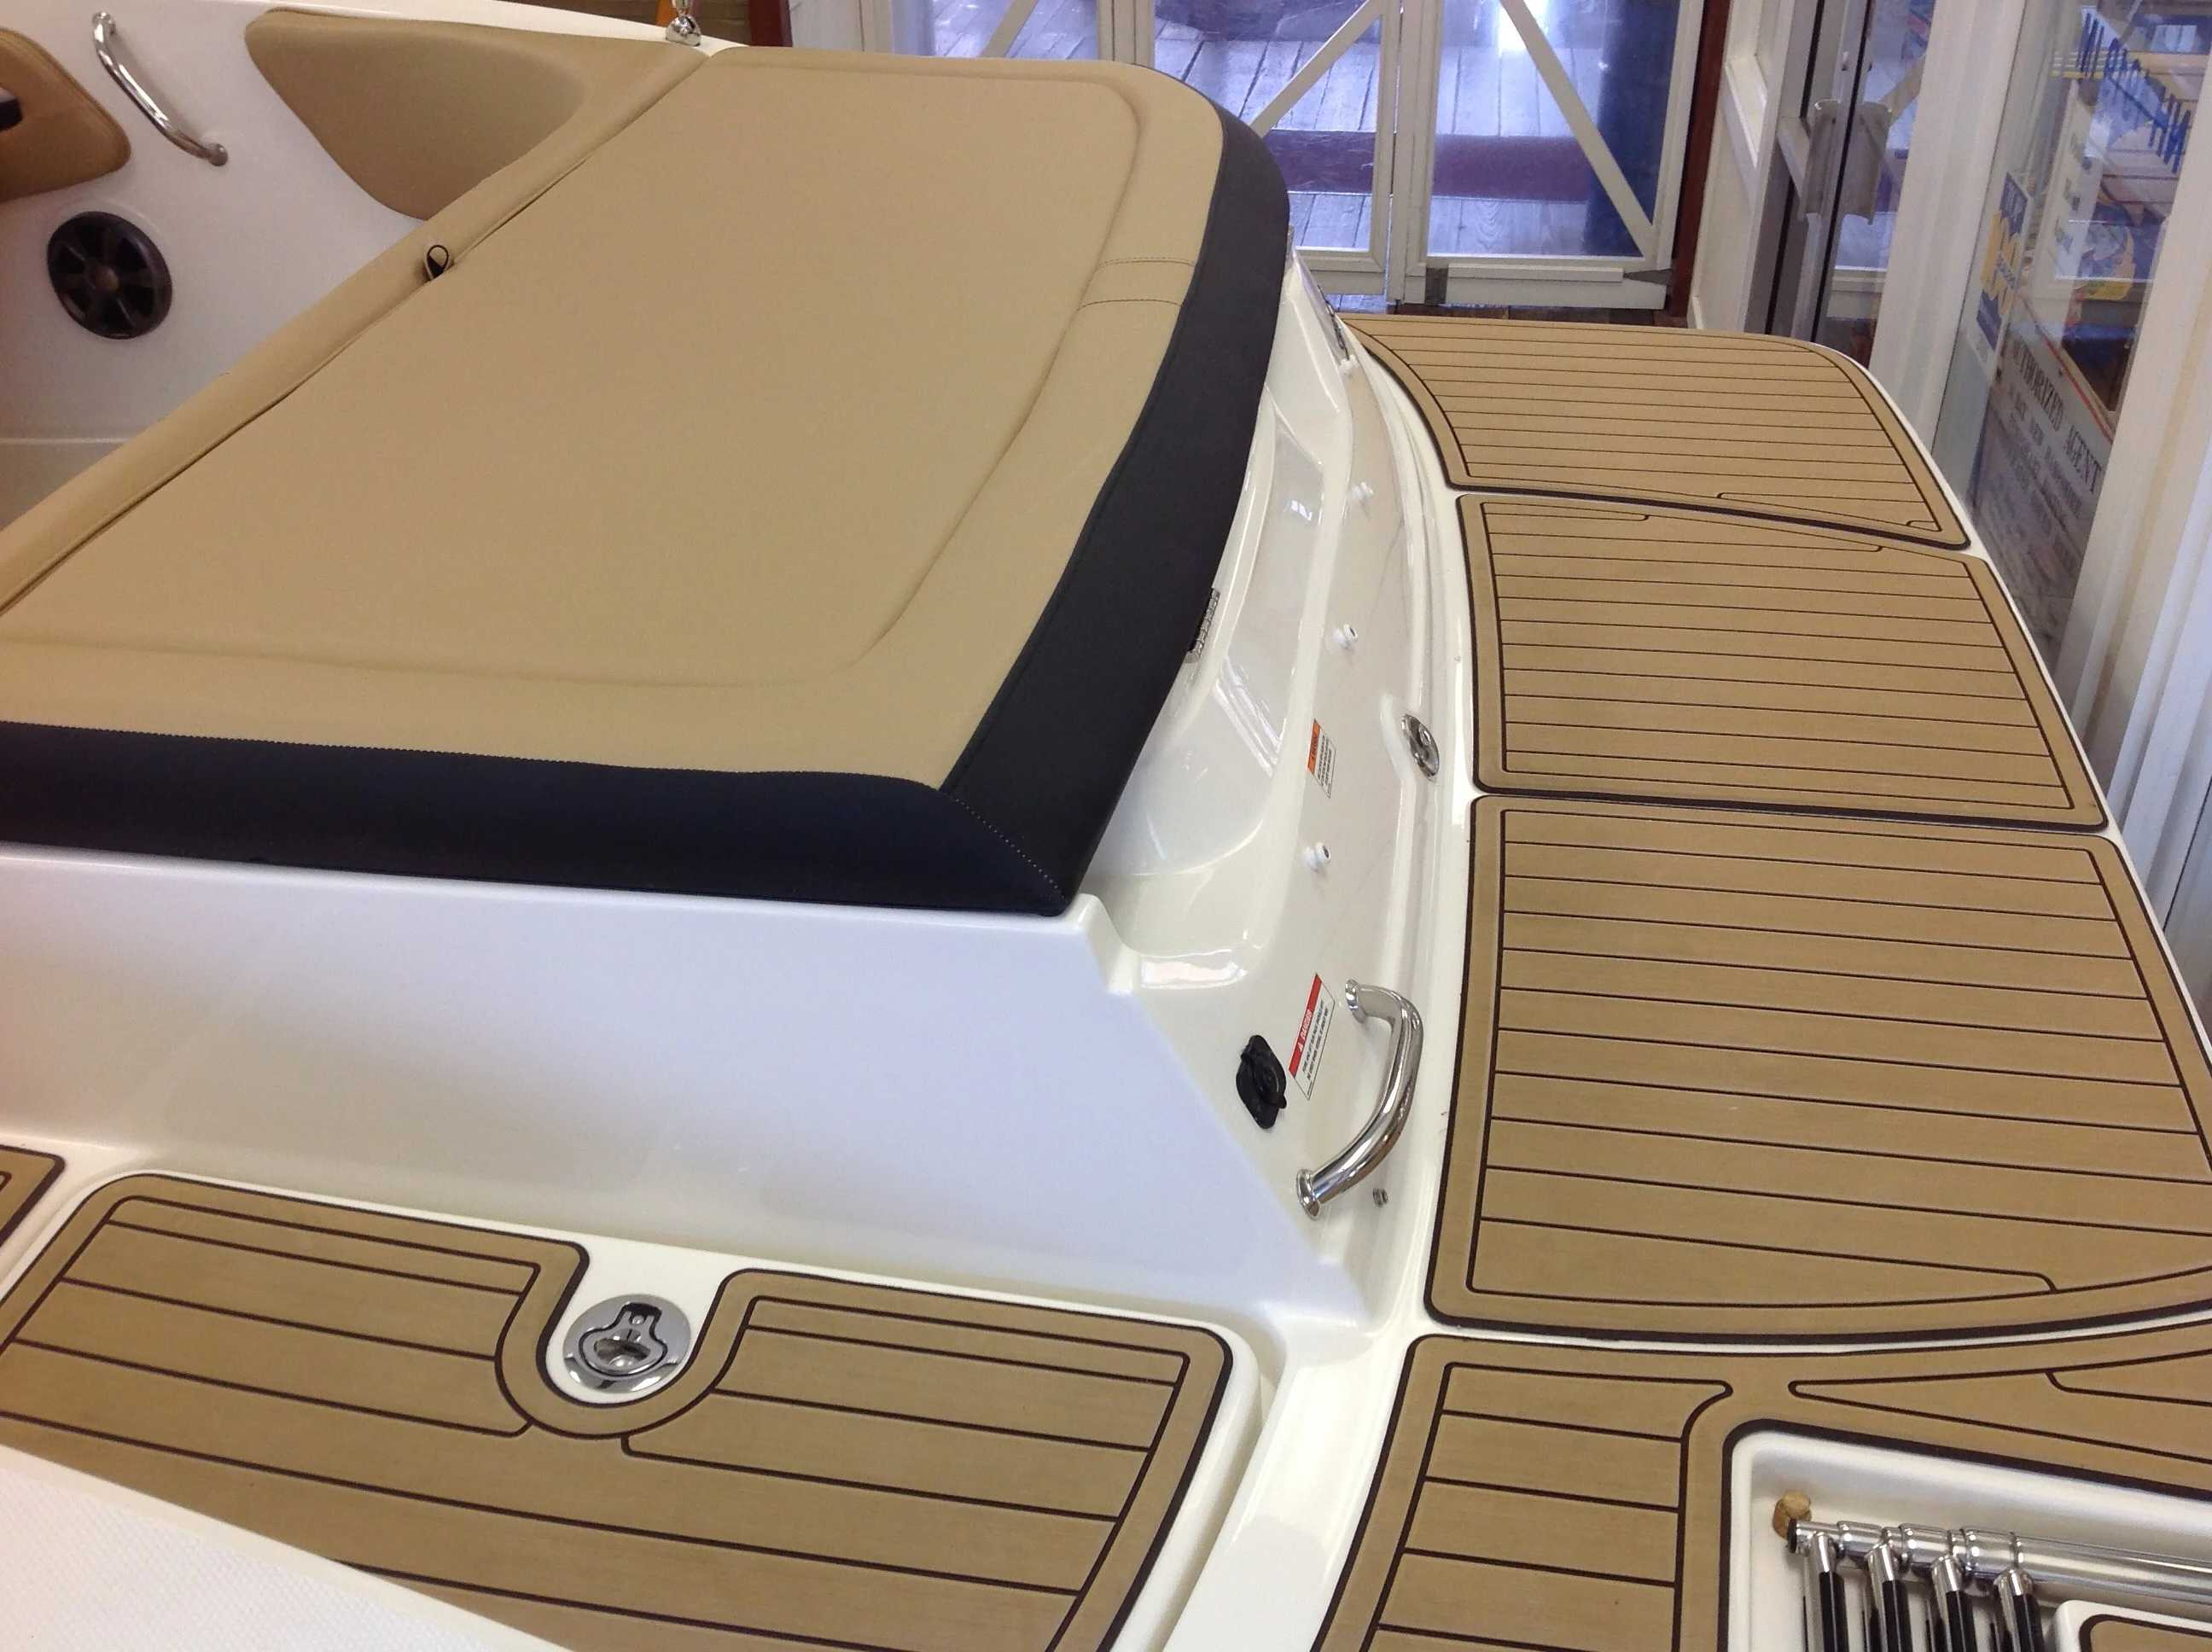 2021 Sea Ray boat for sale, model of the boat is 190 SPX & Image # 12 of 12